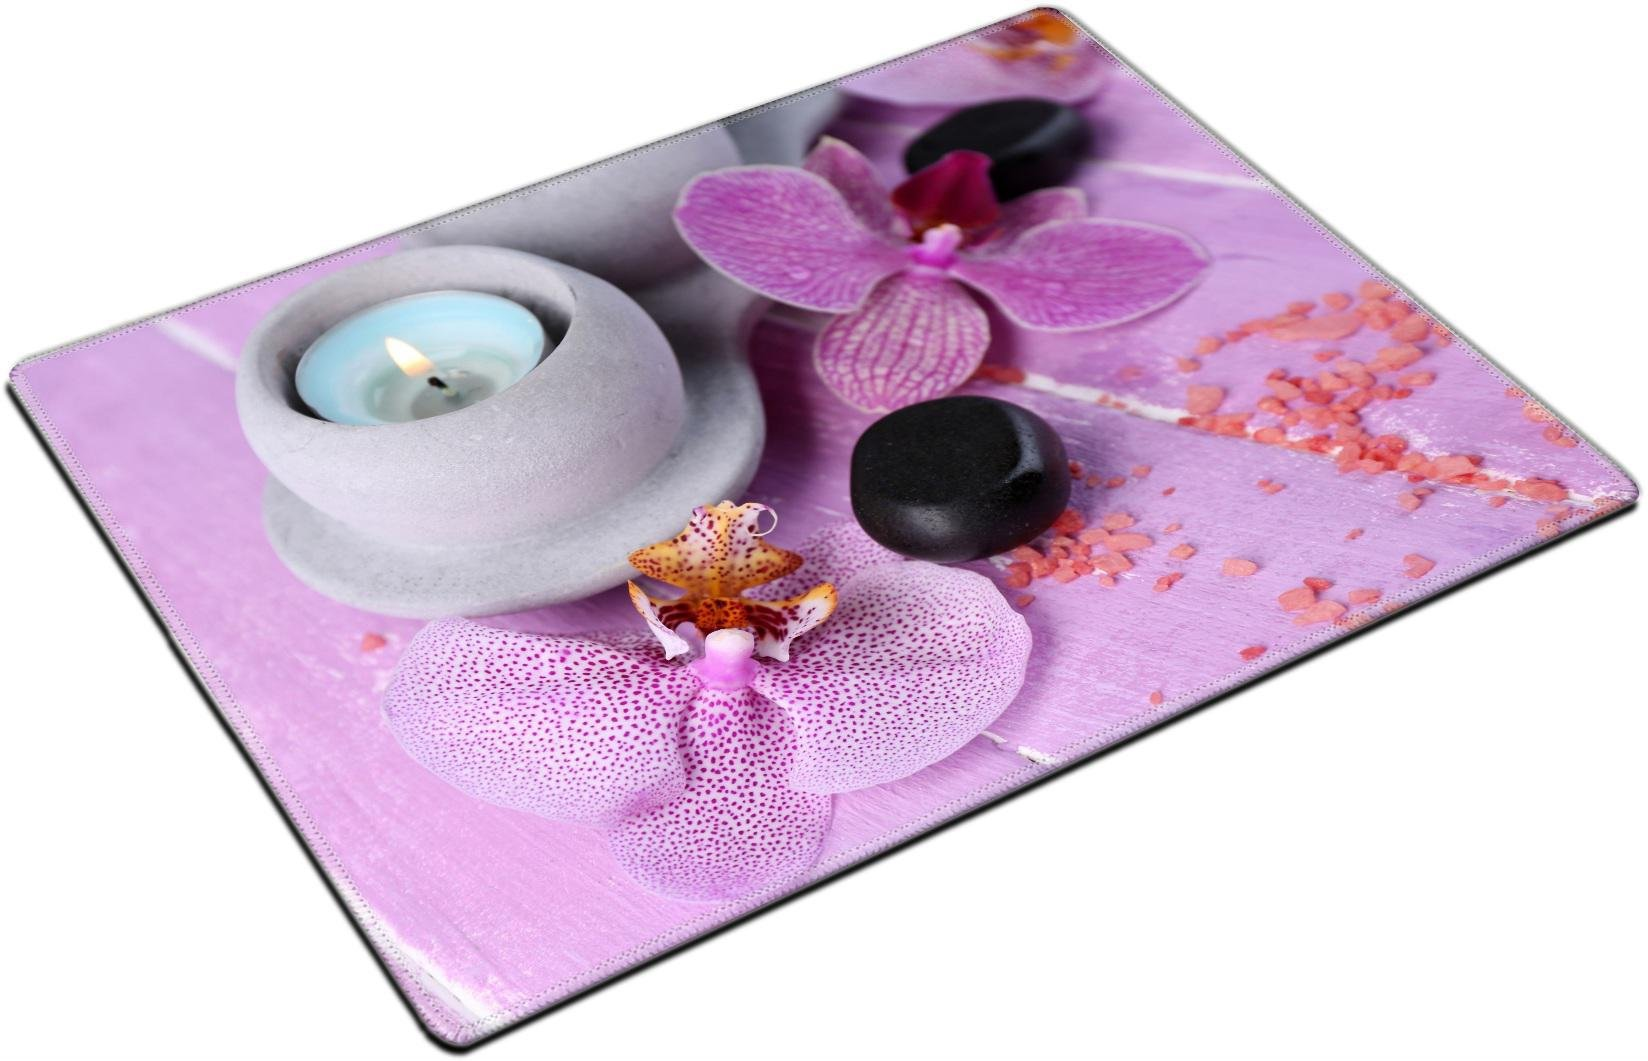 MSD Place Mat Non-Slip Natural Rubber Desk Pads Design: 35235690 Orchid Flowers Spa Stones and sea Salt on Color Wooden Background